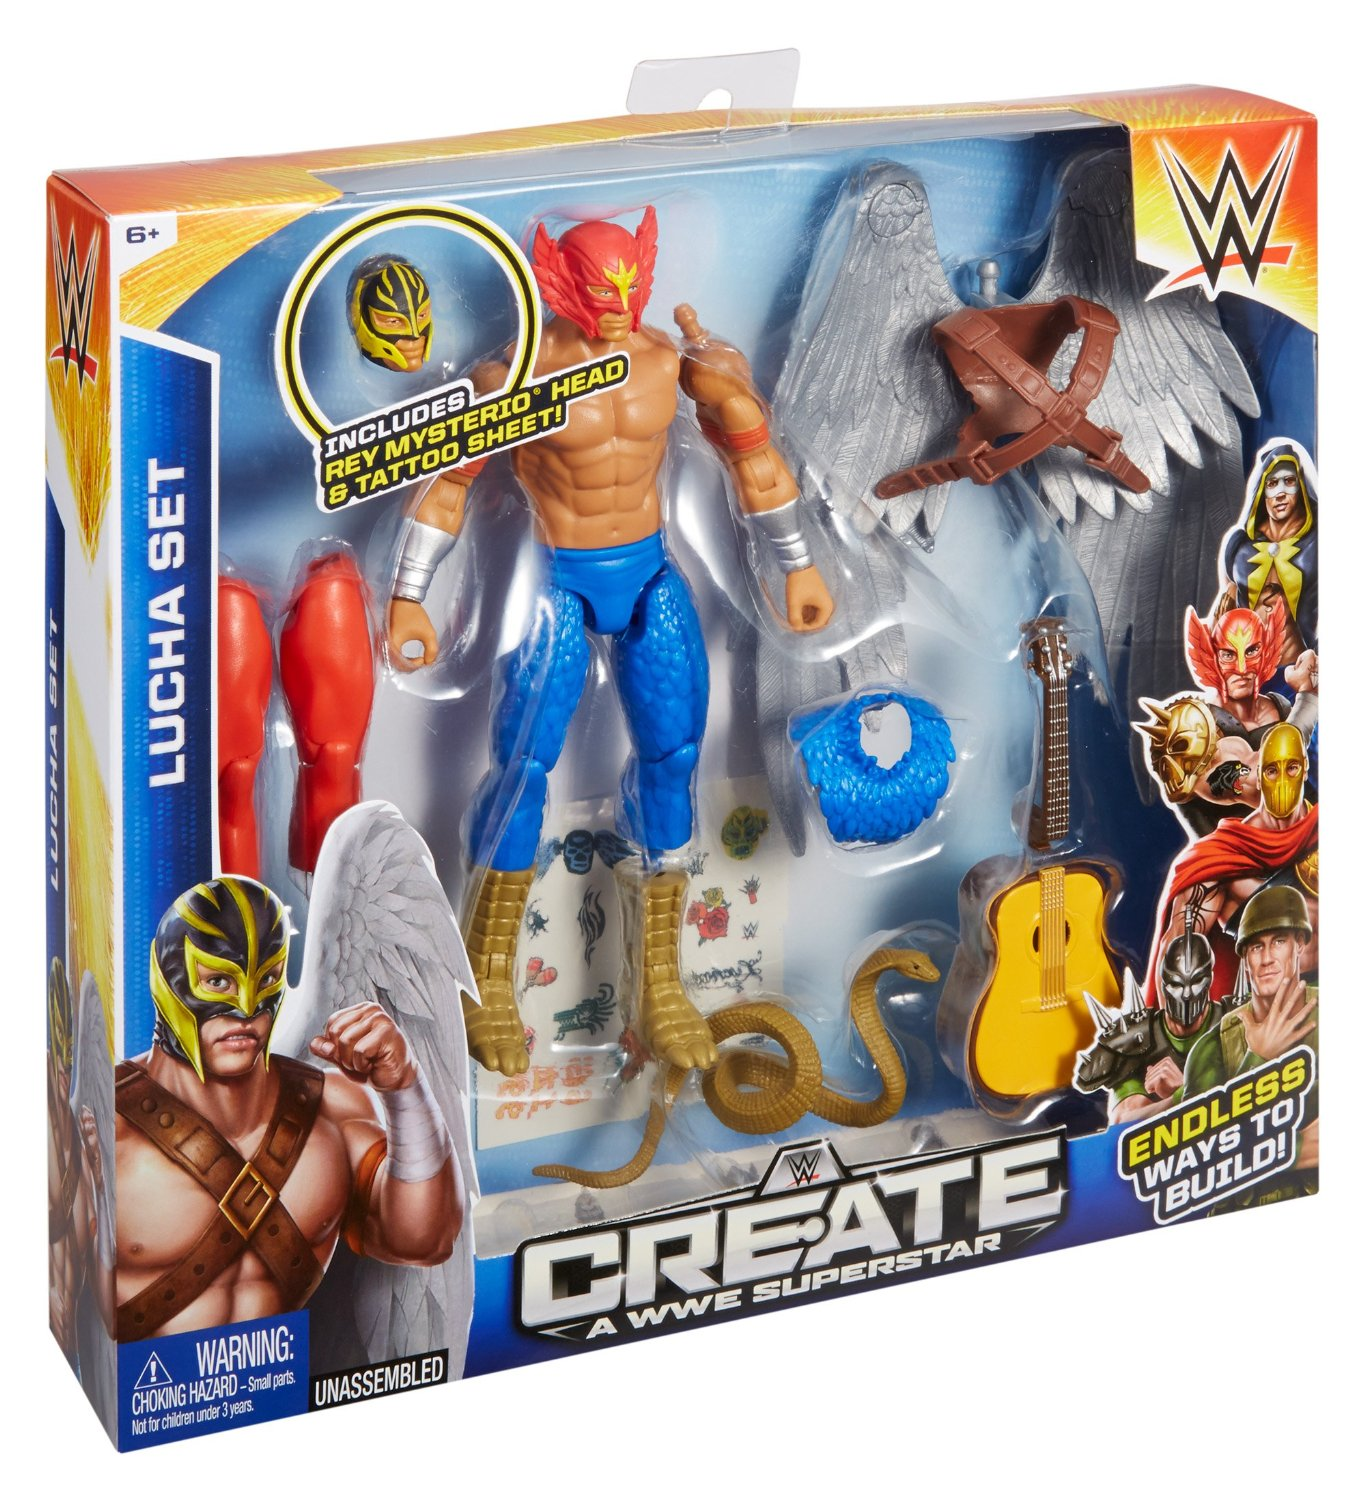 That's right, now your kids can build their own WWE wrestler as they wish since this set includes many mix and match parts. The set has many parts like body ...